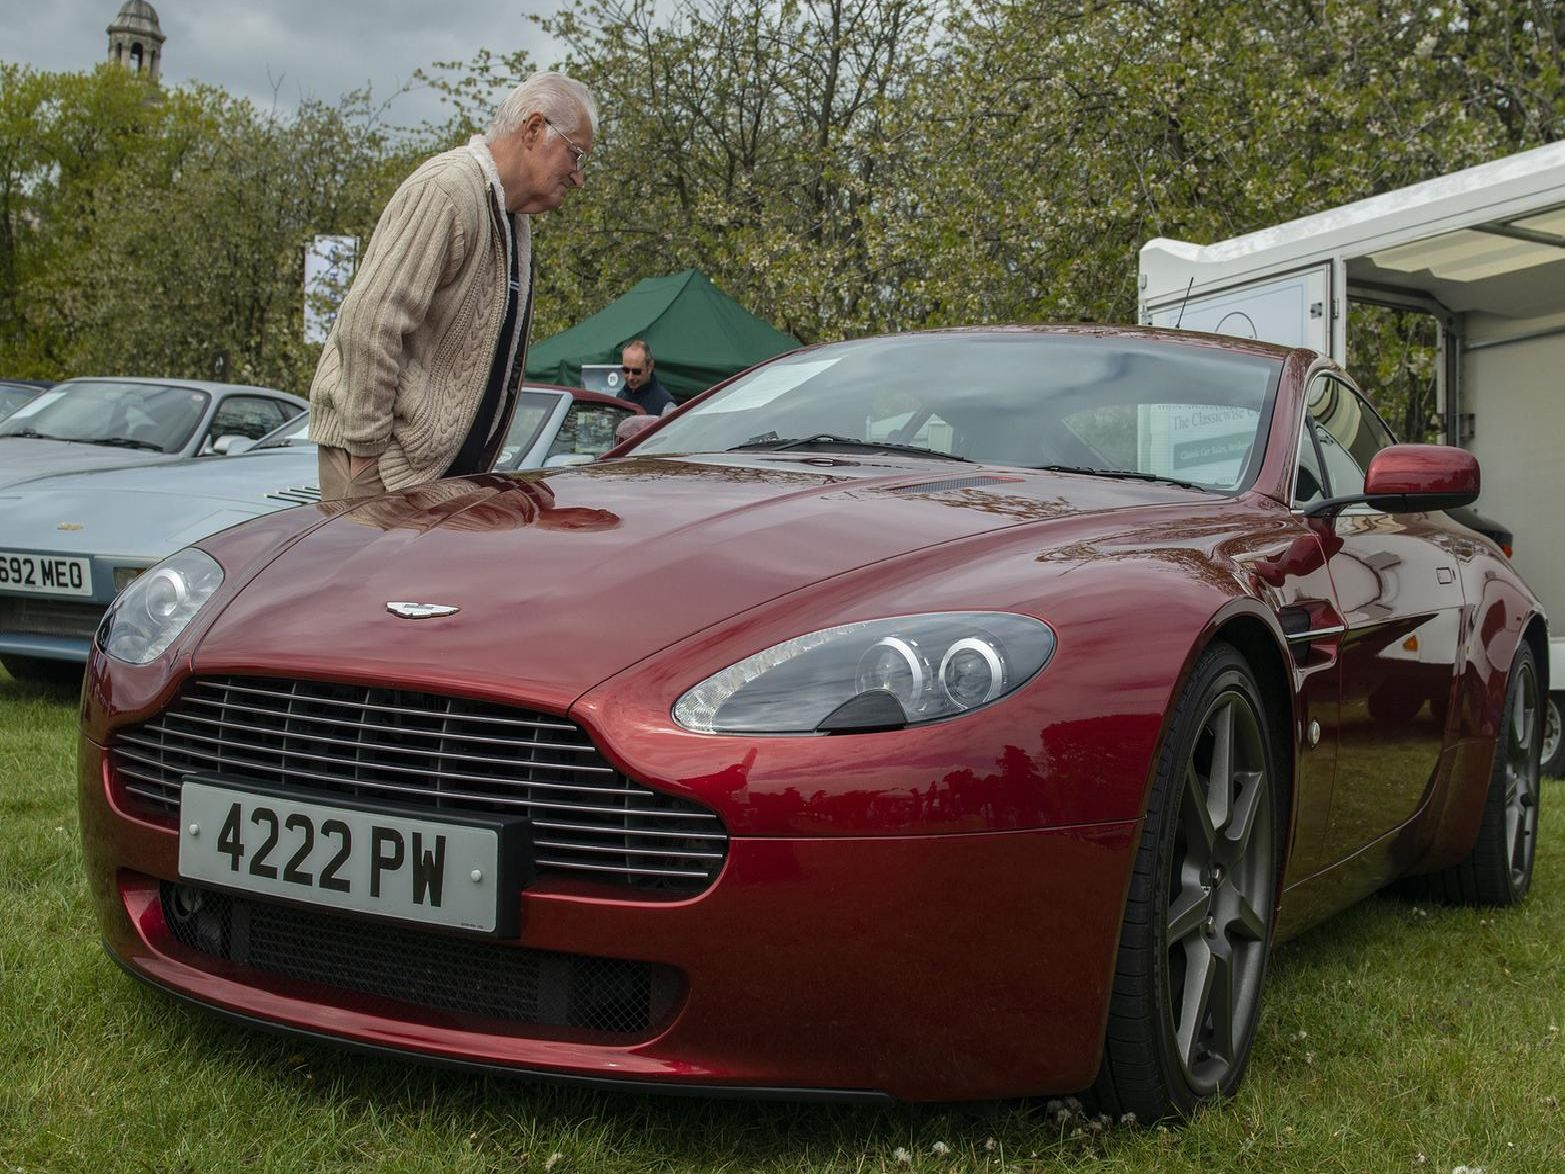 Visitors were able to see the selection of classic cars at the event